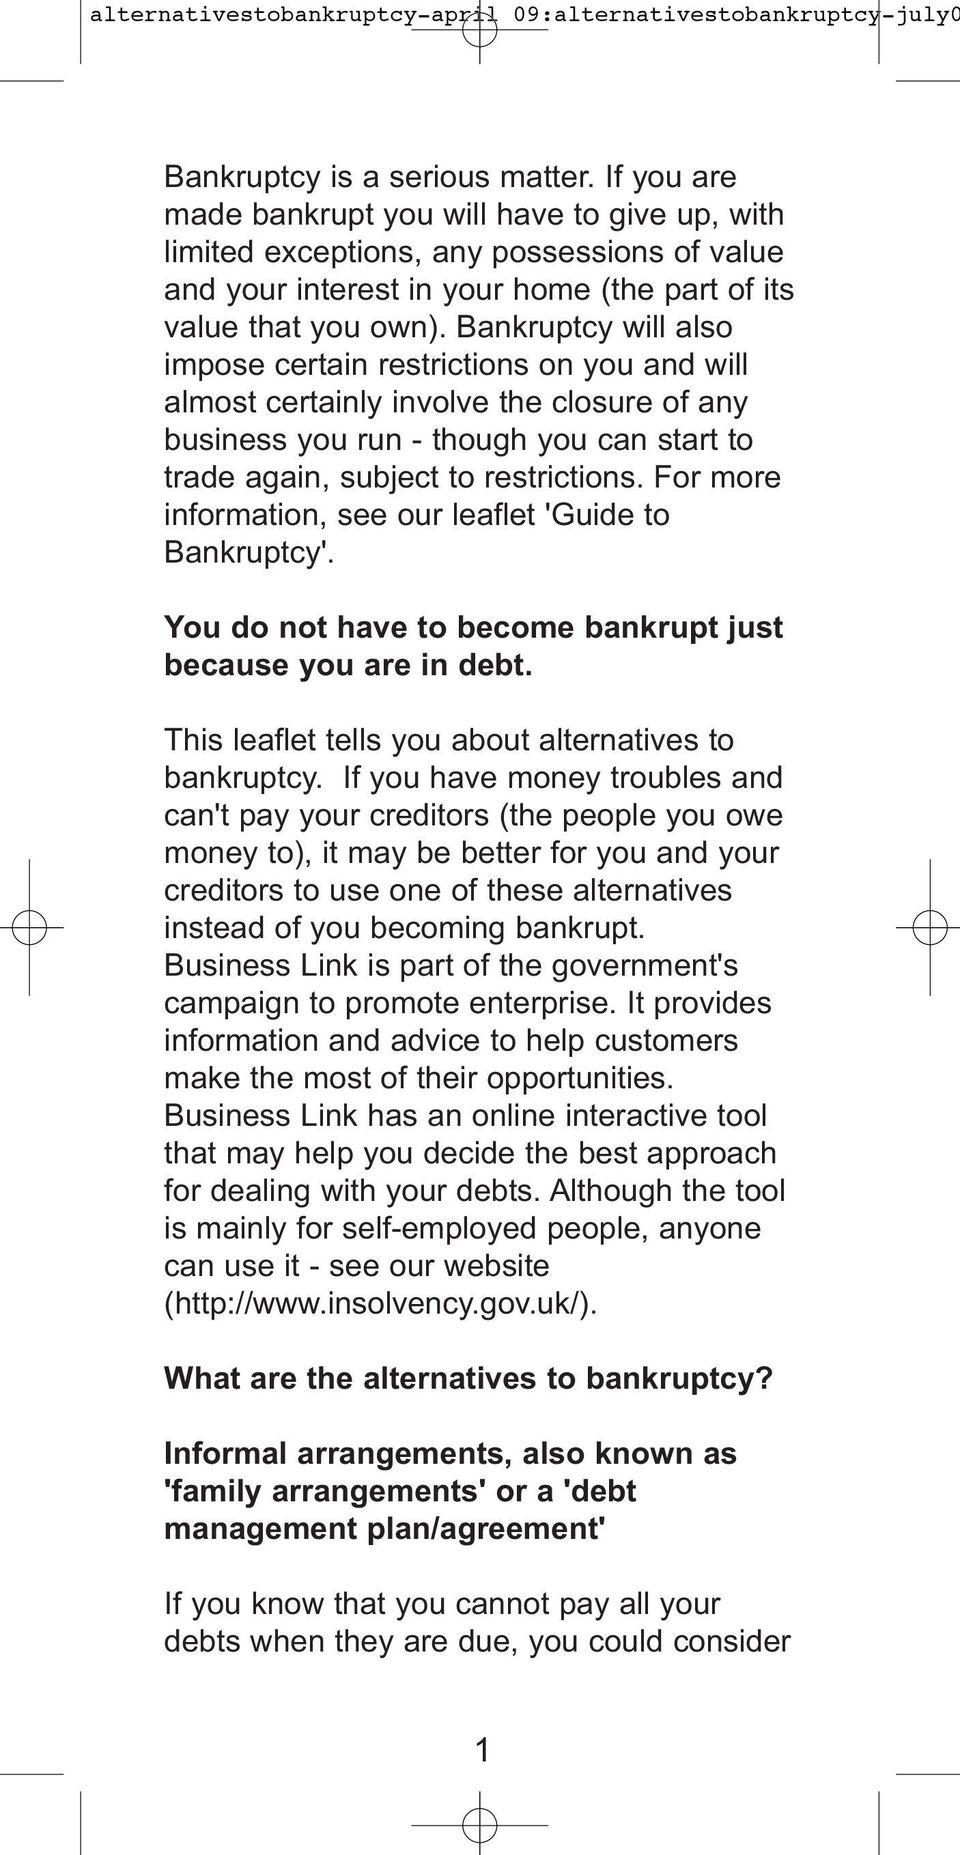 Bankruptcy will also impose certain restrictions on you and will almost certainly involve the closure of any business you run - though you can start to trade again, subject to restrictions.